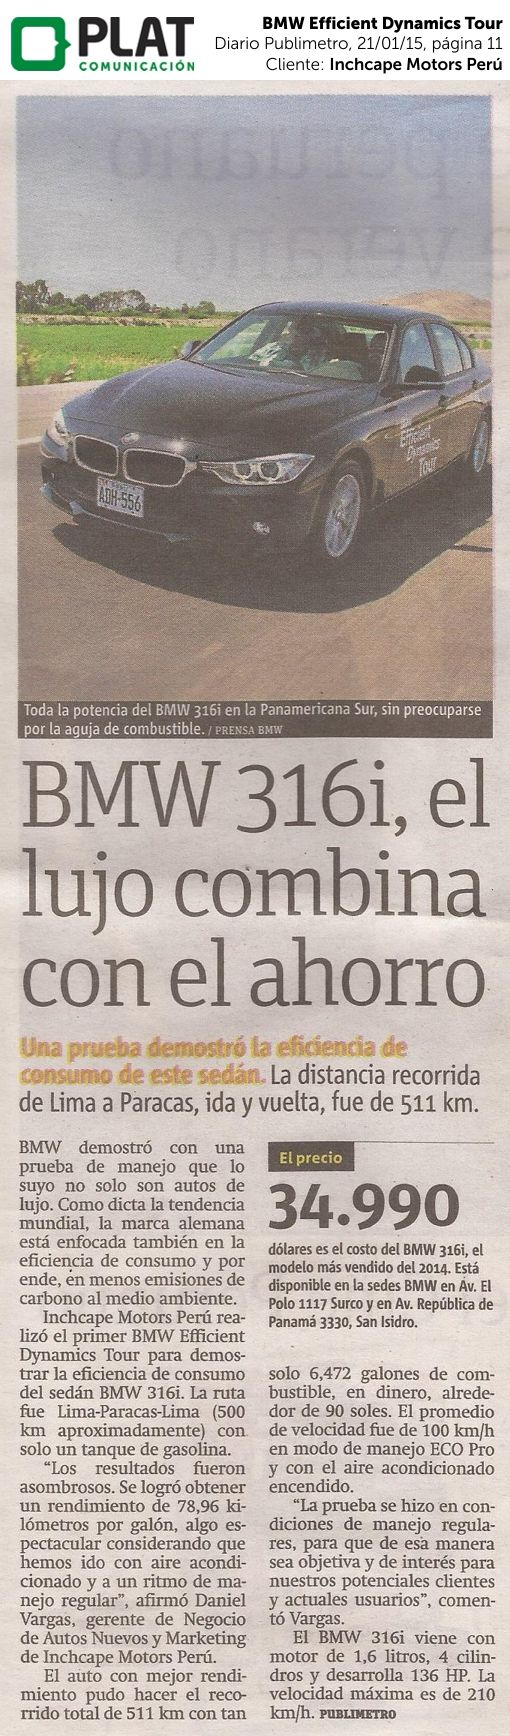 Inchcape Motors: BMW Efficient Dynamics Tour en el diario Publimetro de Perú (21/01/15)